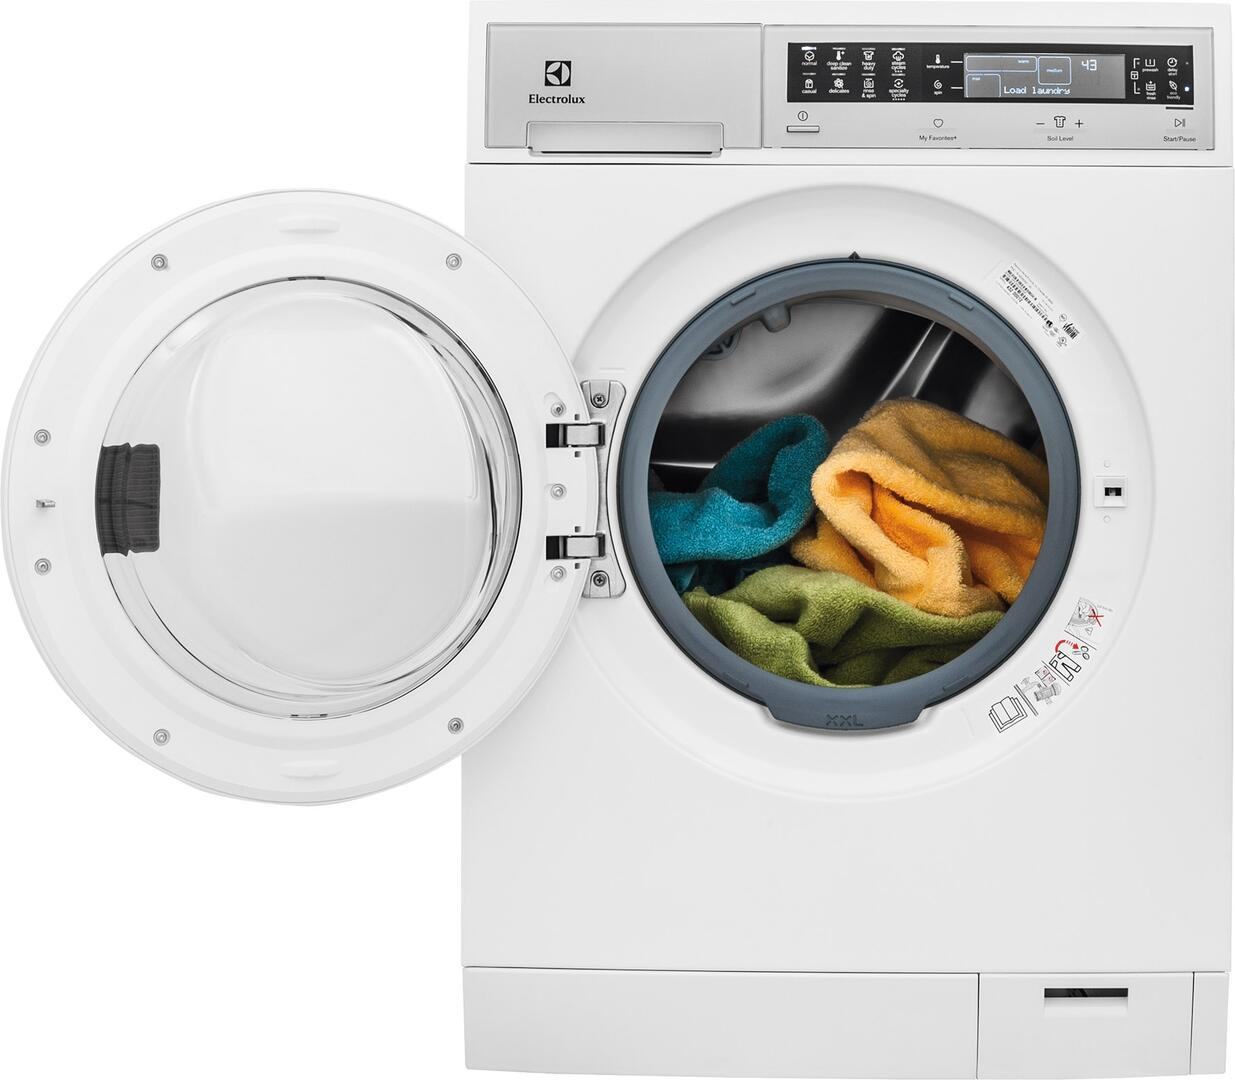 White Compact Electrolux Front Load Washer And Dryer Set